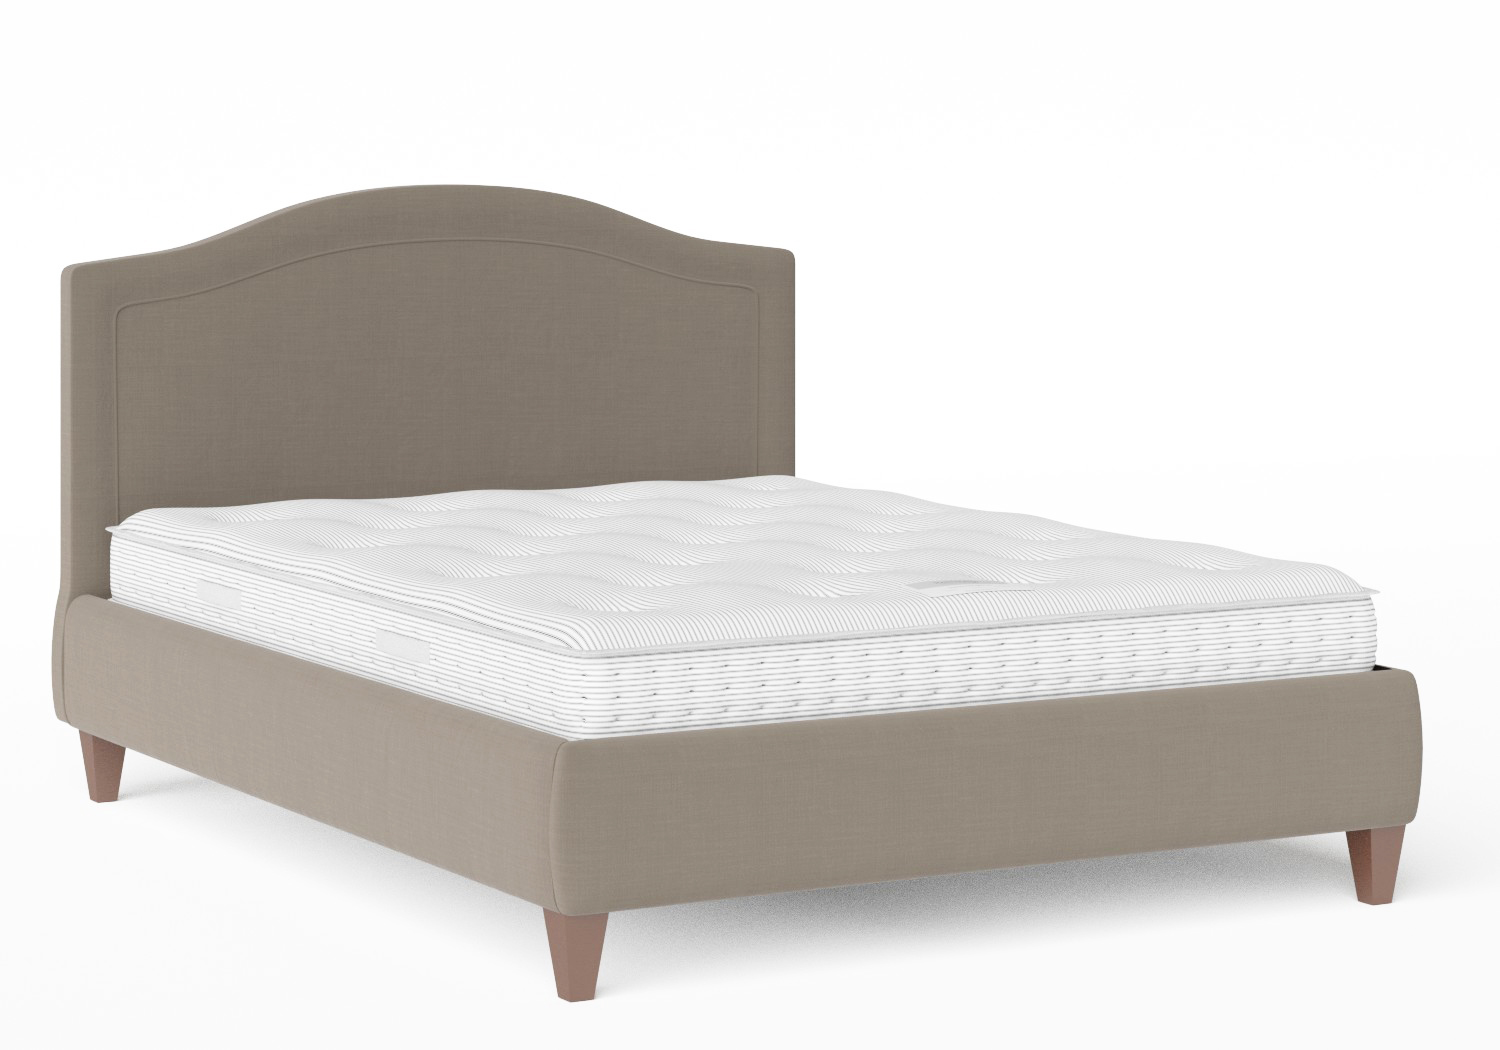 Daniella Upholstered bed in Grey fabric shown with Juno 1 mattress